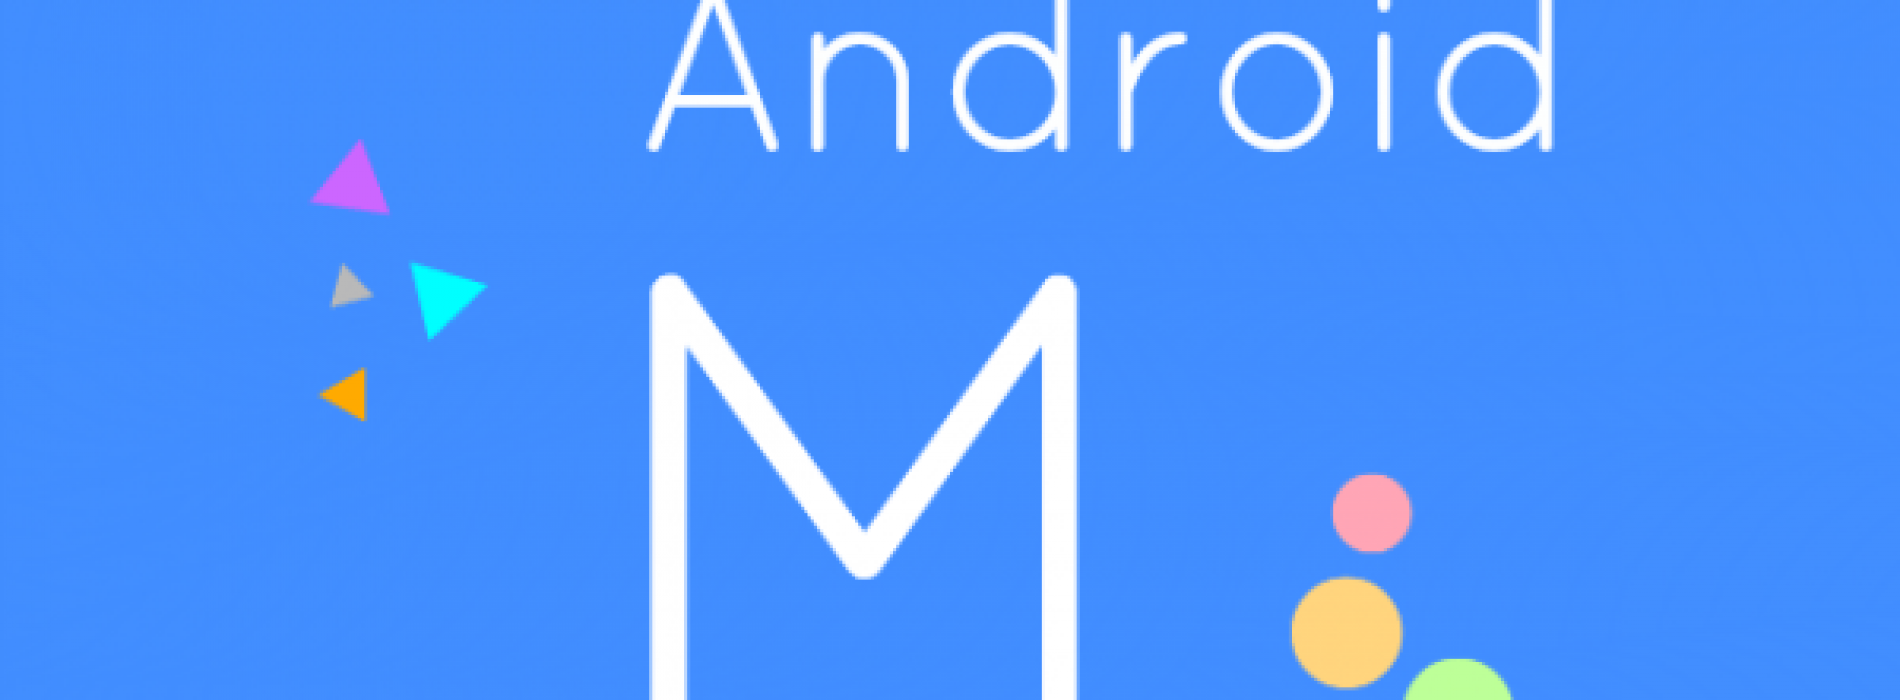 Experience Android M with the Android M Launcher